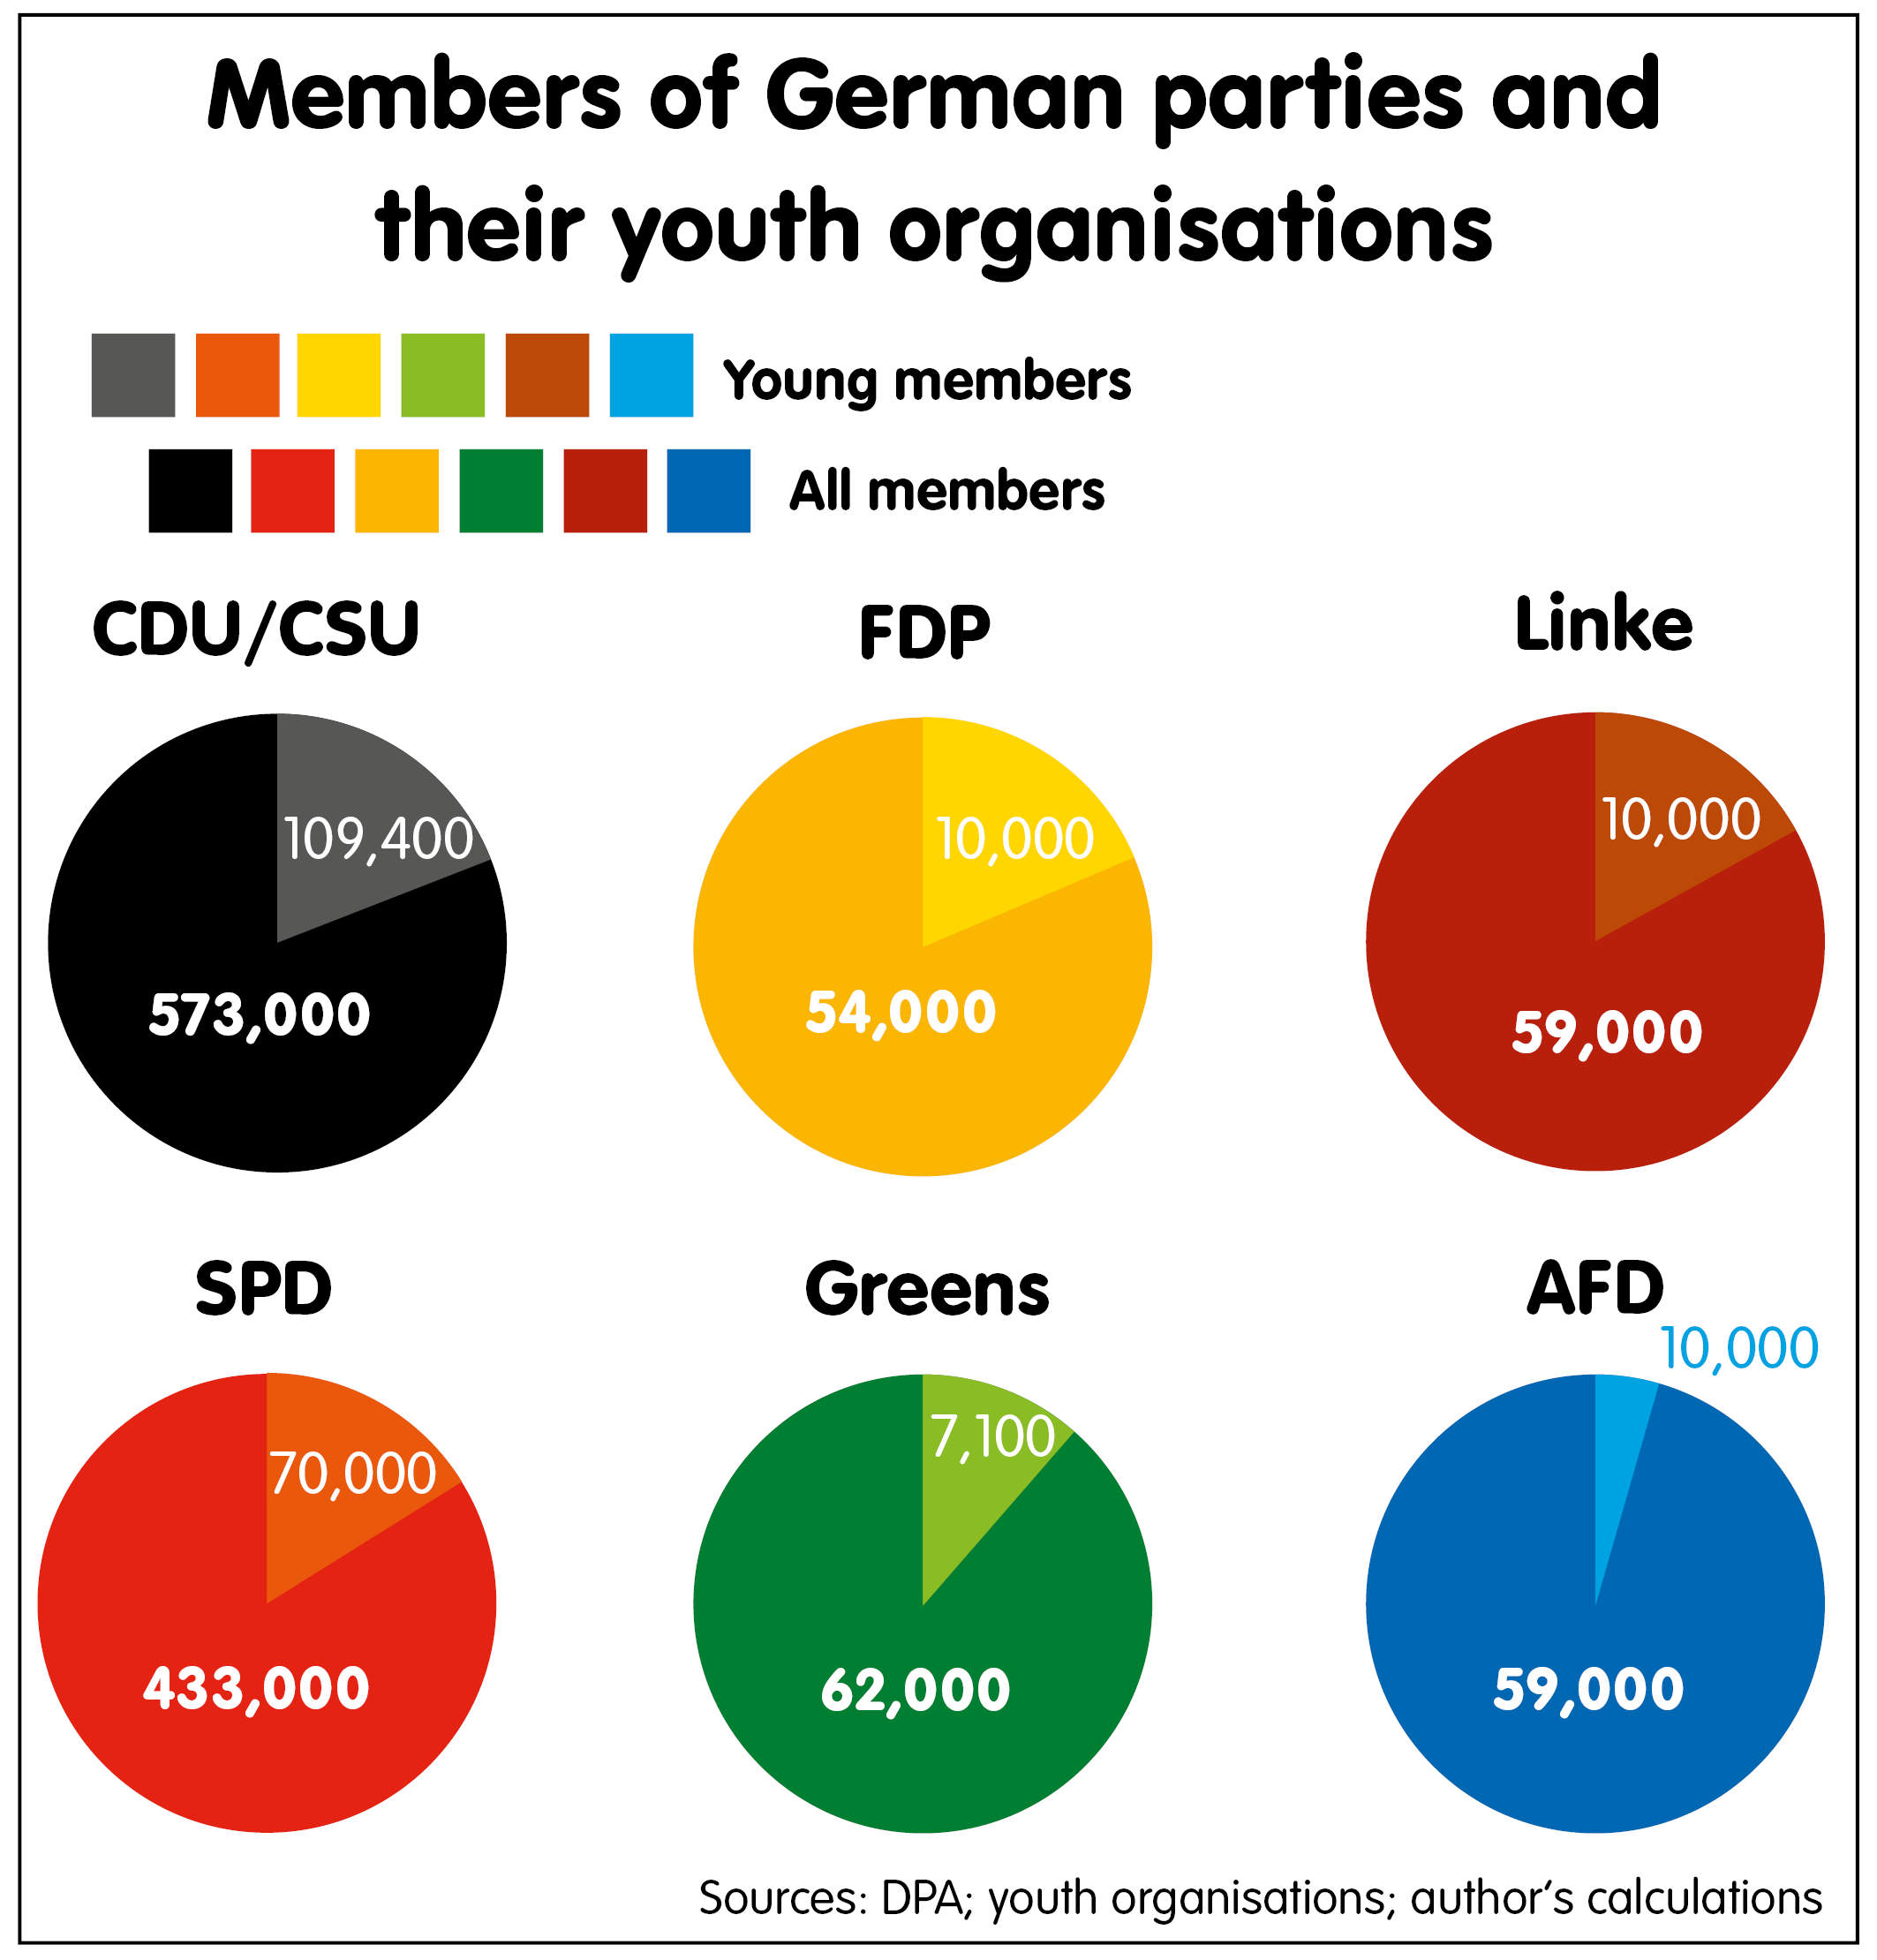 Members of German parties and their youth organisations